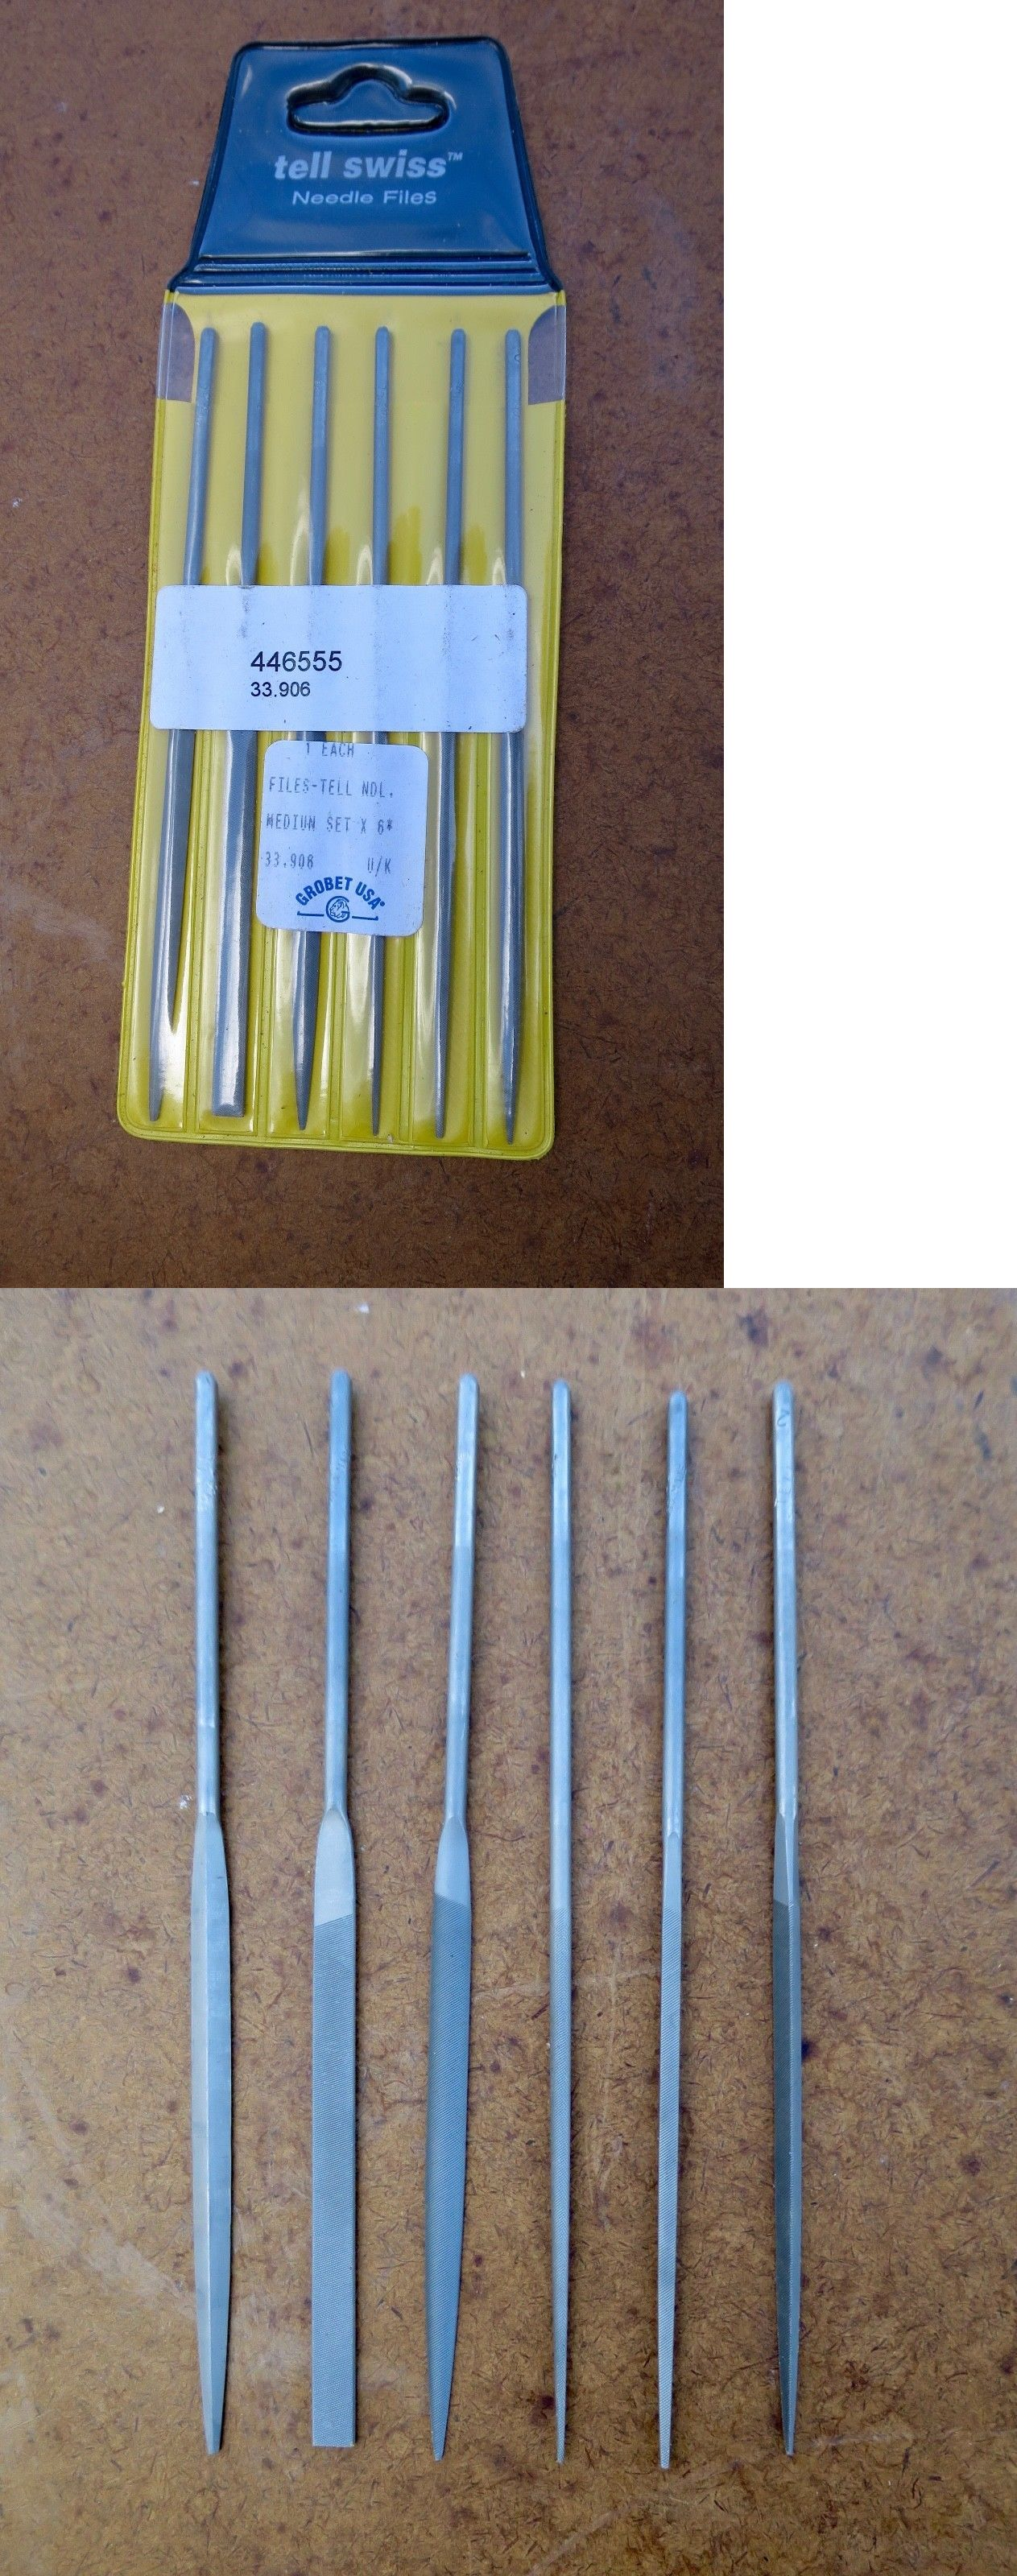 Files 178974 5 5 Grobet Swiss Needle File Set Medium 6 Pc 33 906 New Buy It Now Only 14 On Ebay Files Grobet Swiss Needle File Needle Filing